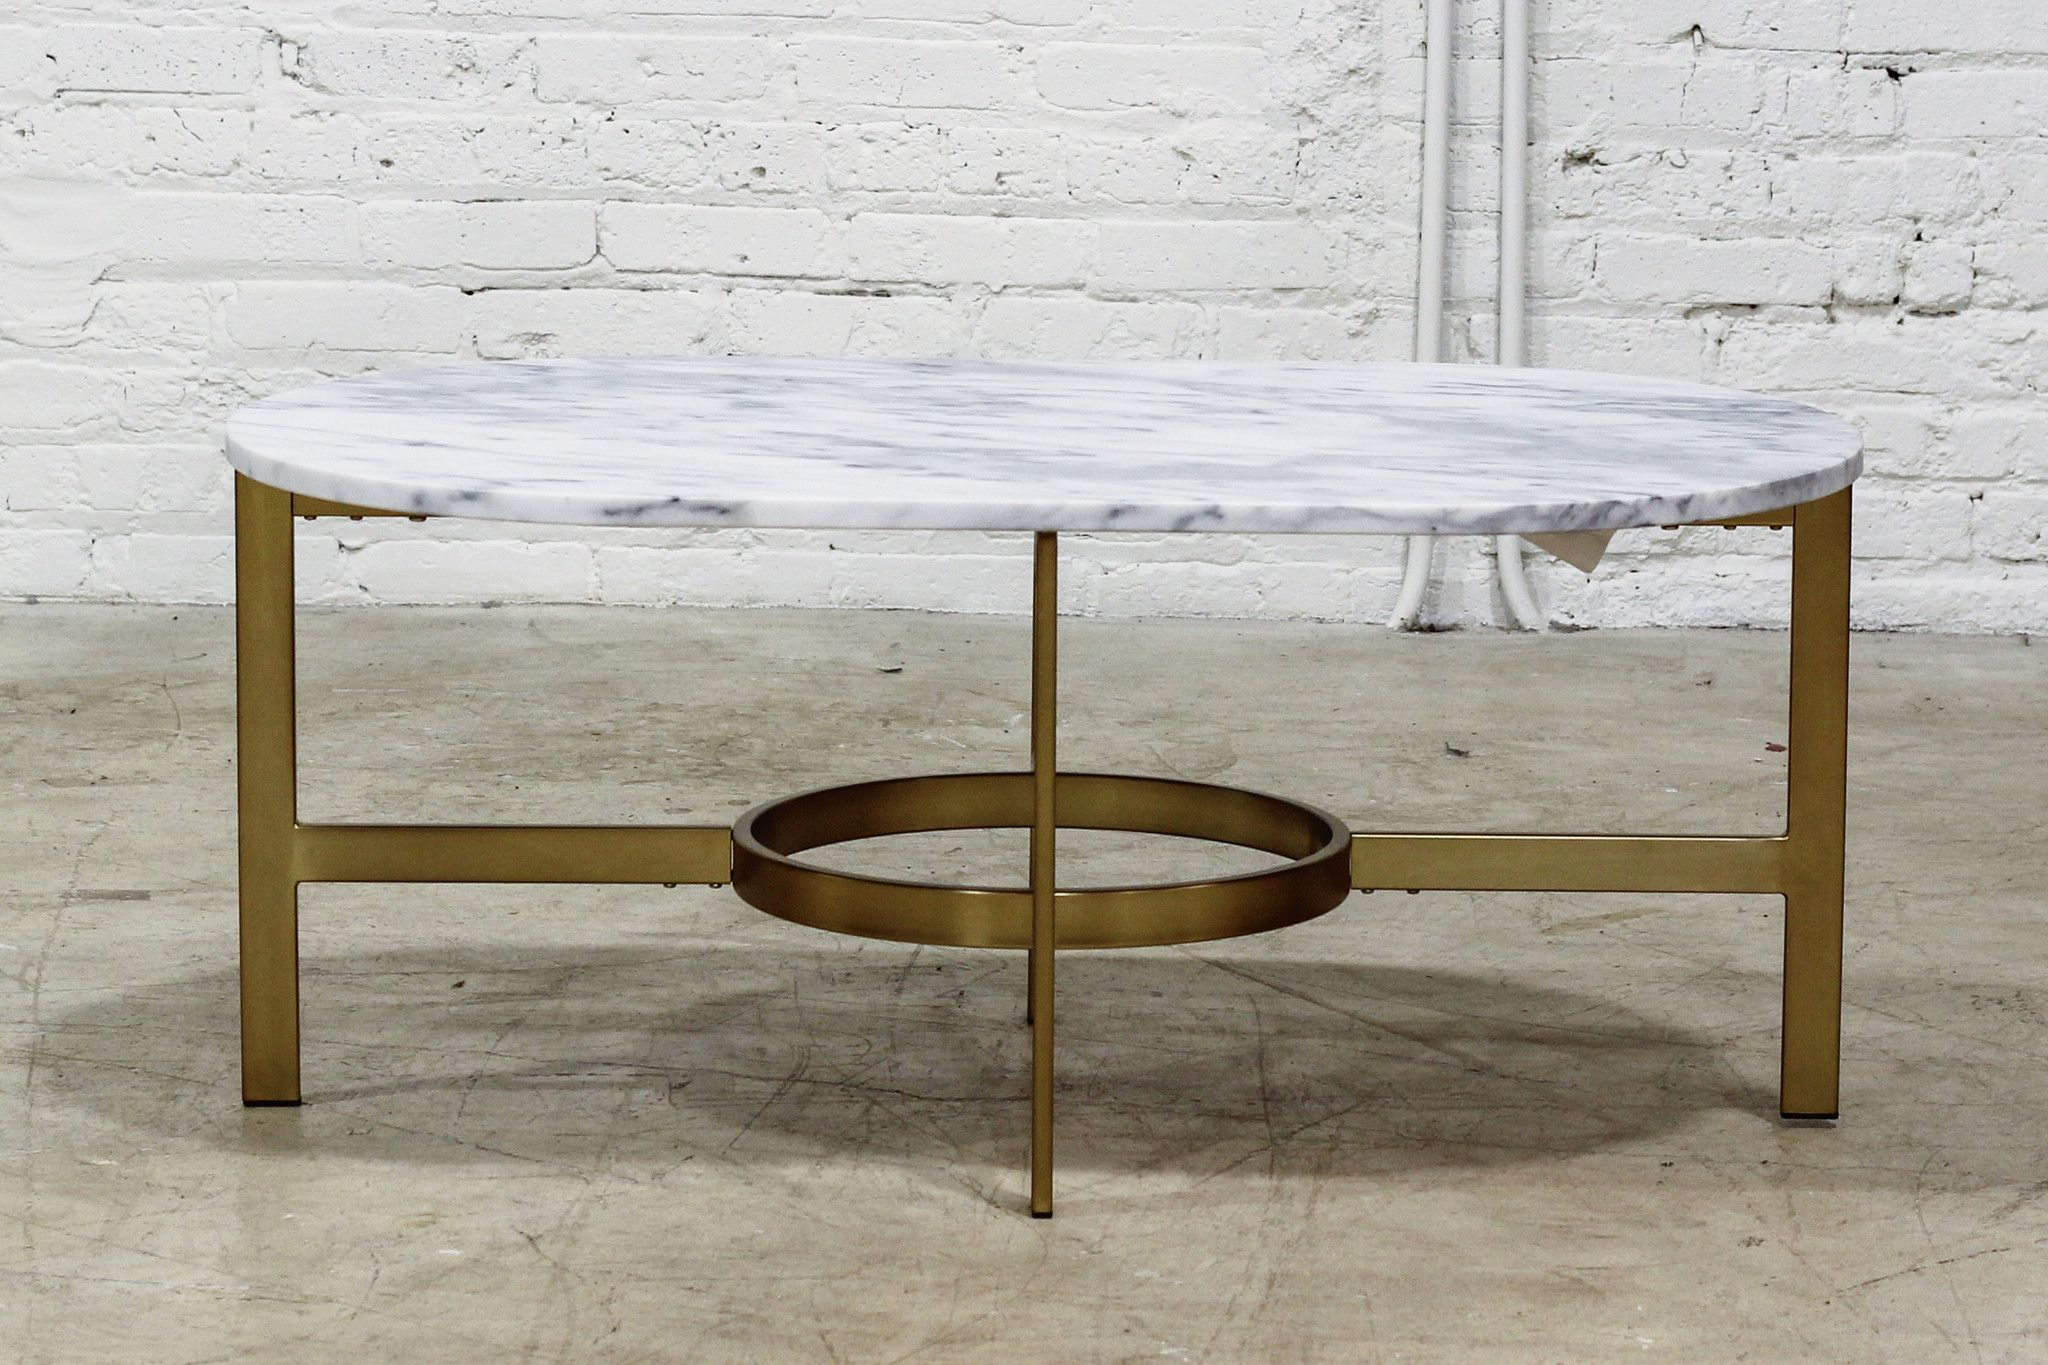 Marble Oval Coffee Table With Brass Base Coffee Table Oval Coffee Tables Luxury Furniture [ 1365 x 2048 Pixel ]